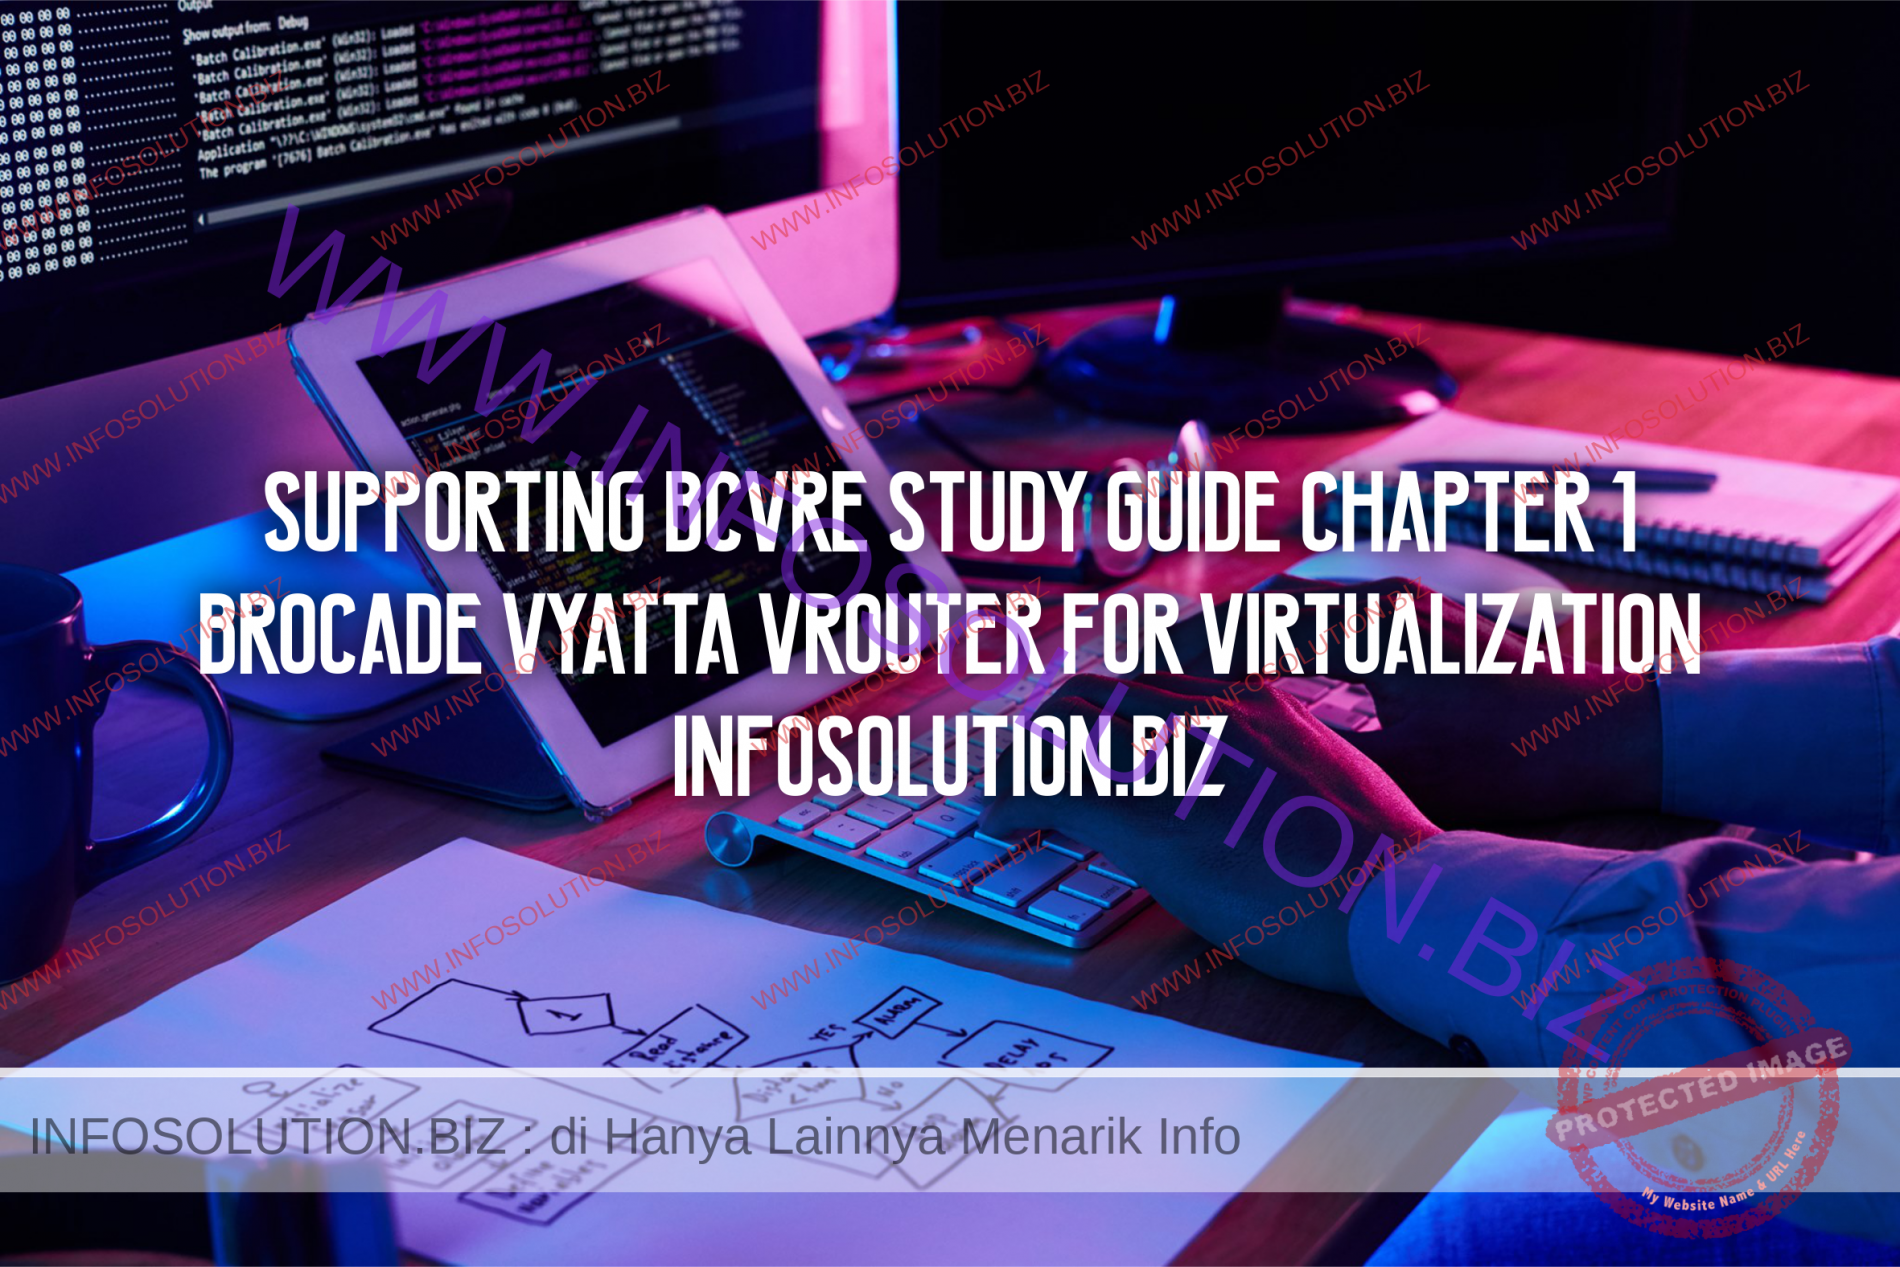 Supporting BCVRE Study Guide Chapter 1 Brocade Vyatta vRouter for Virtualization